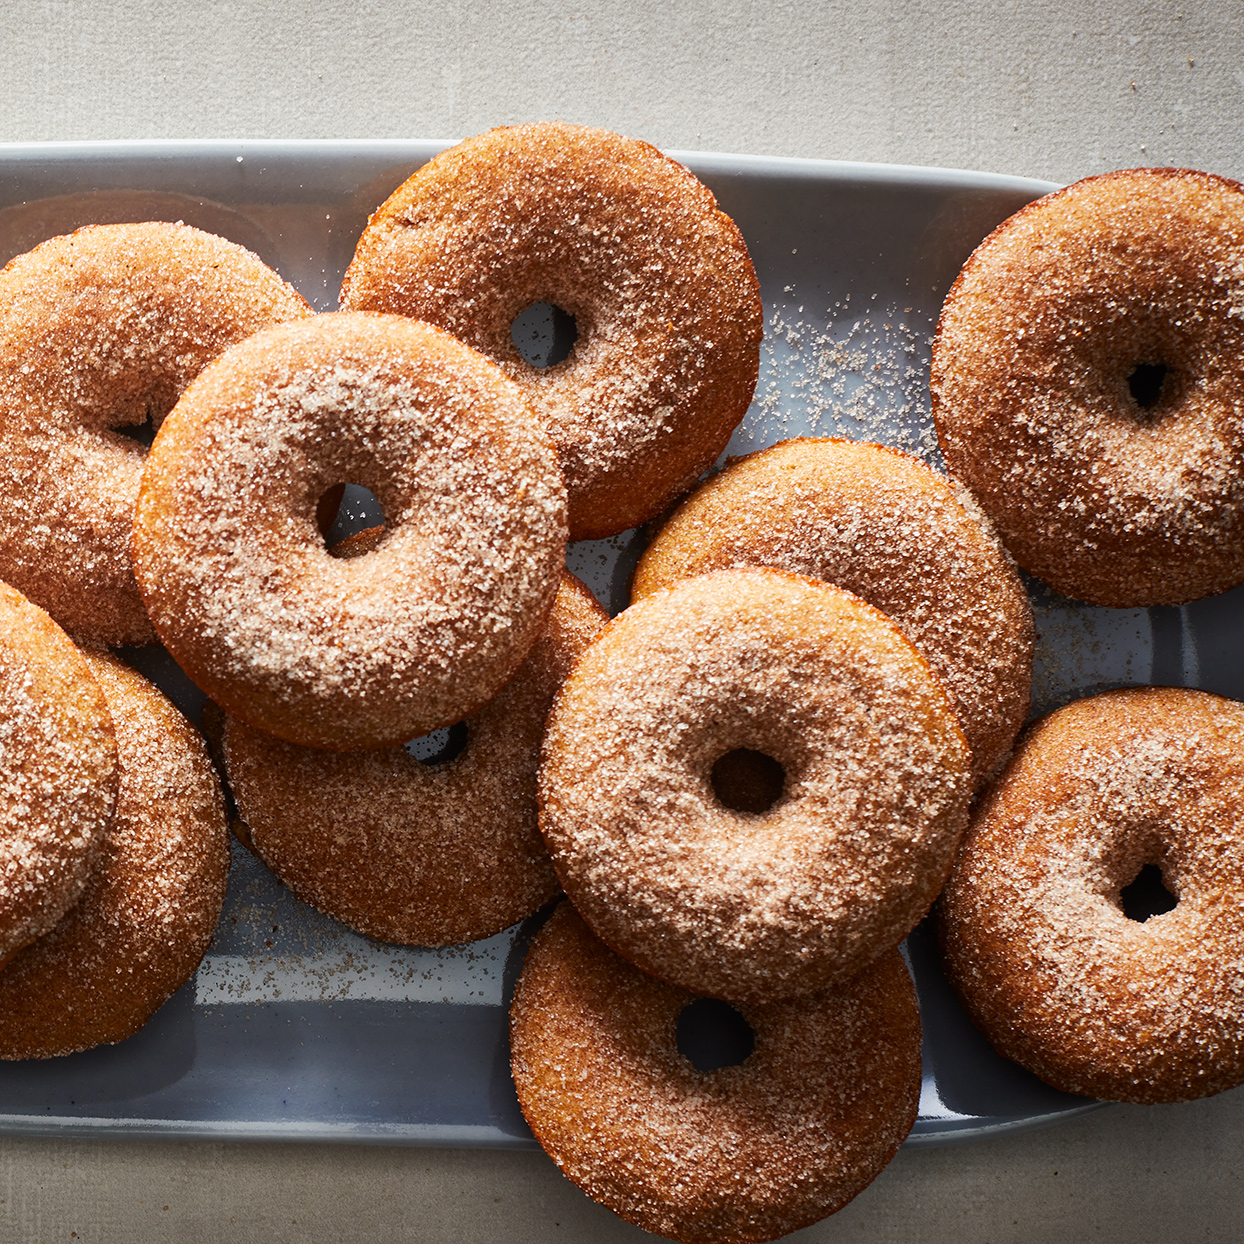 Cinnamon-Sugar Dusted Apple Cider Donuts